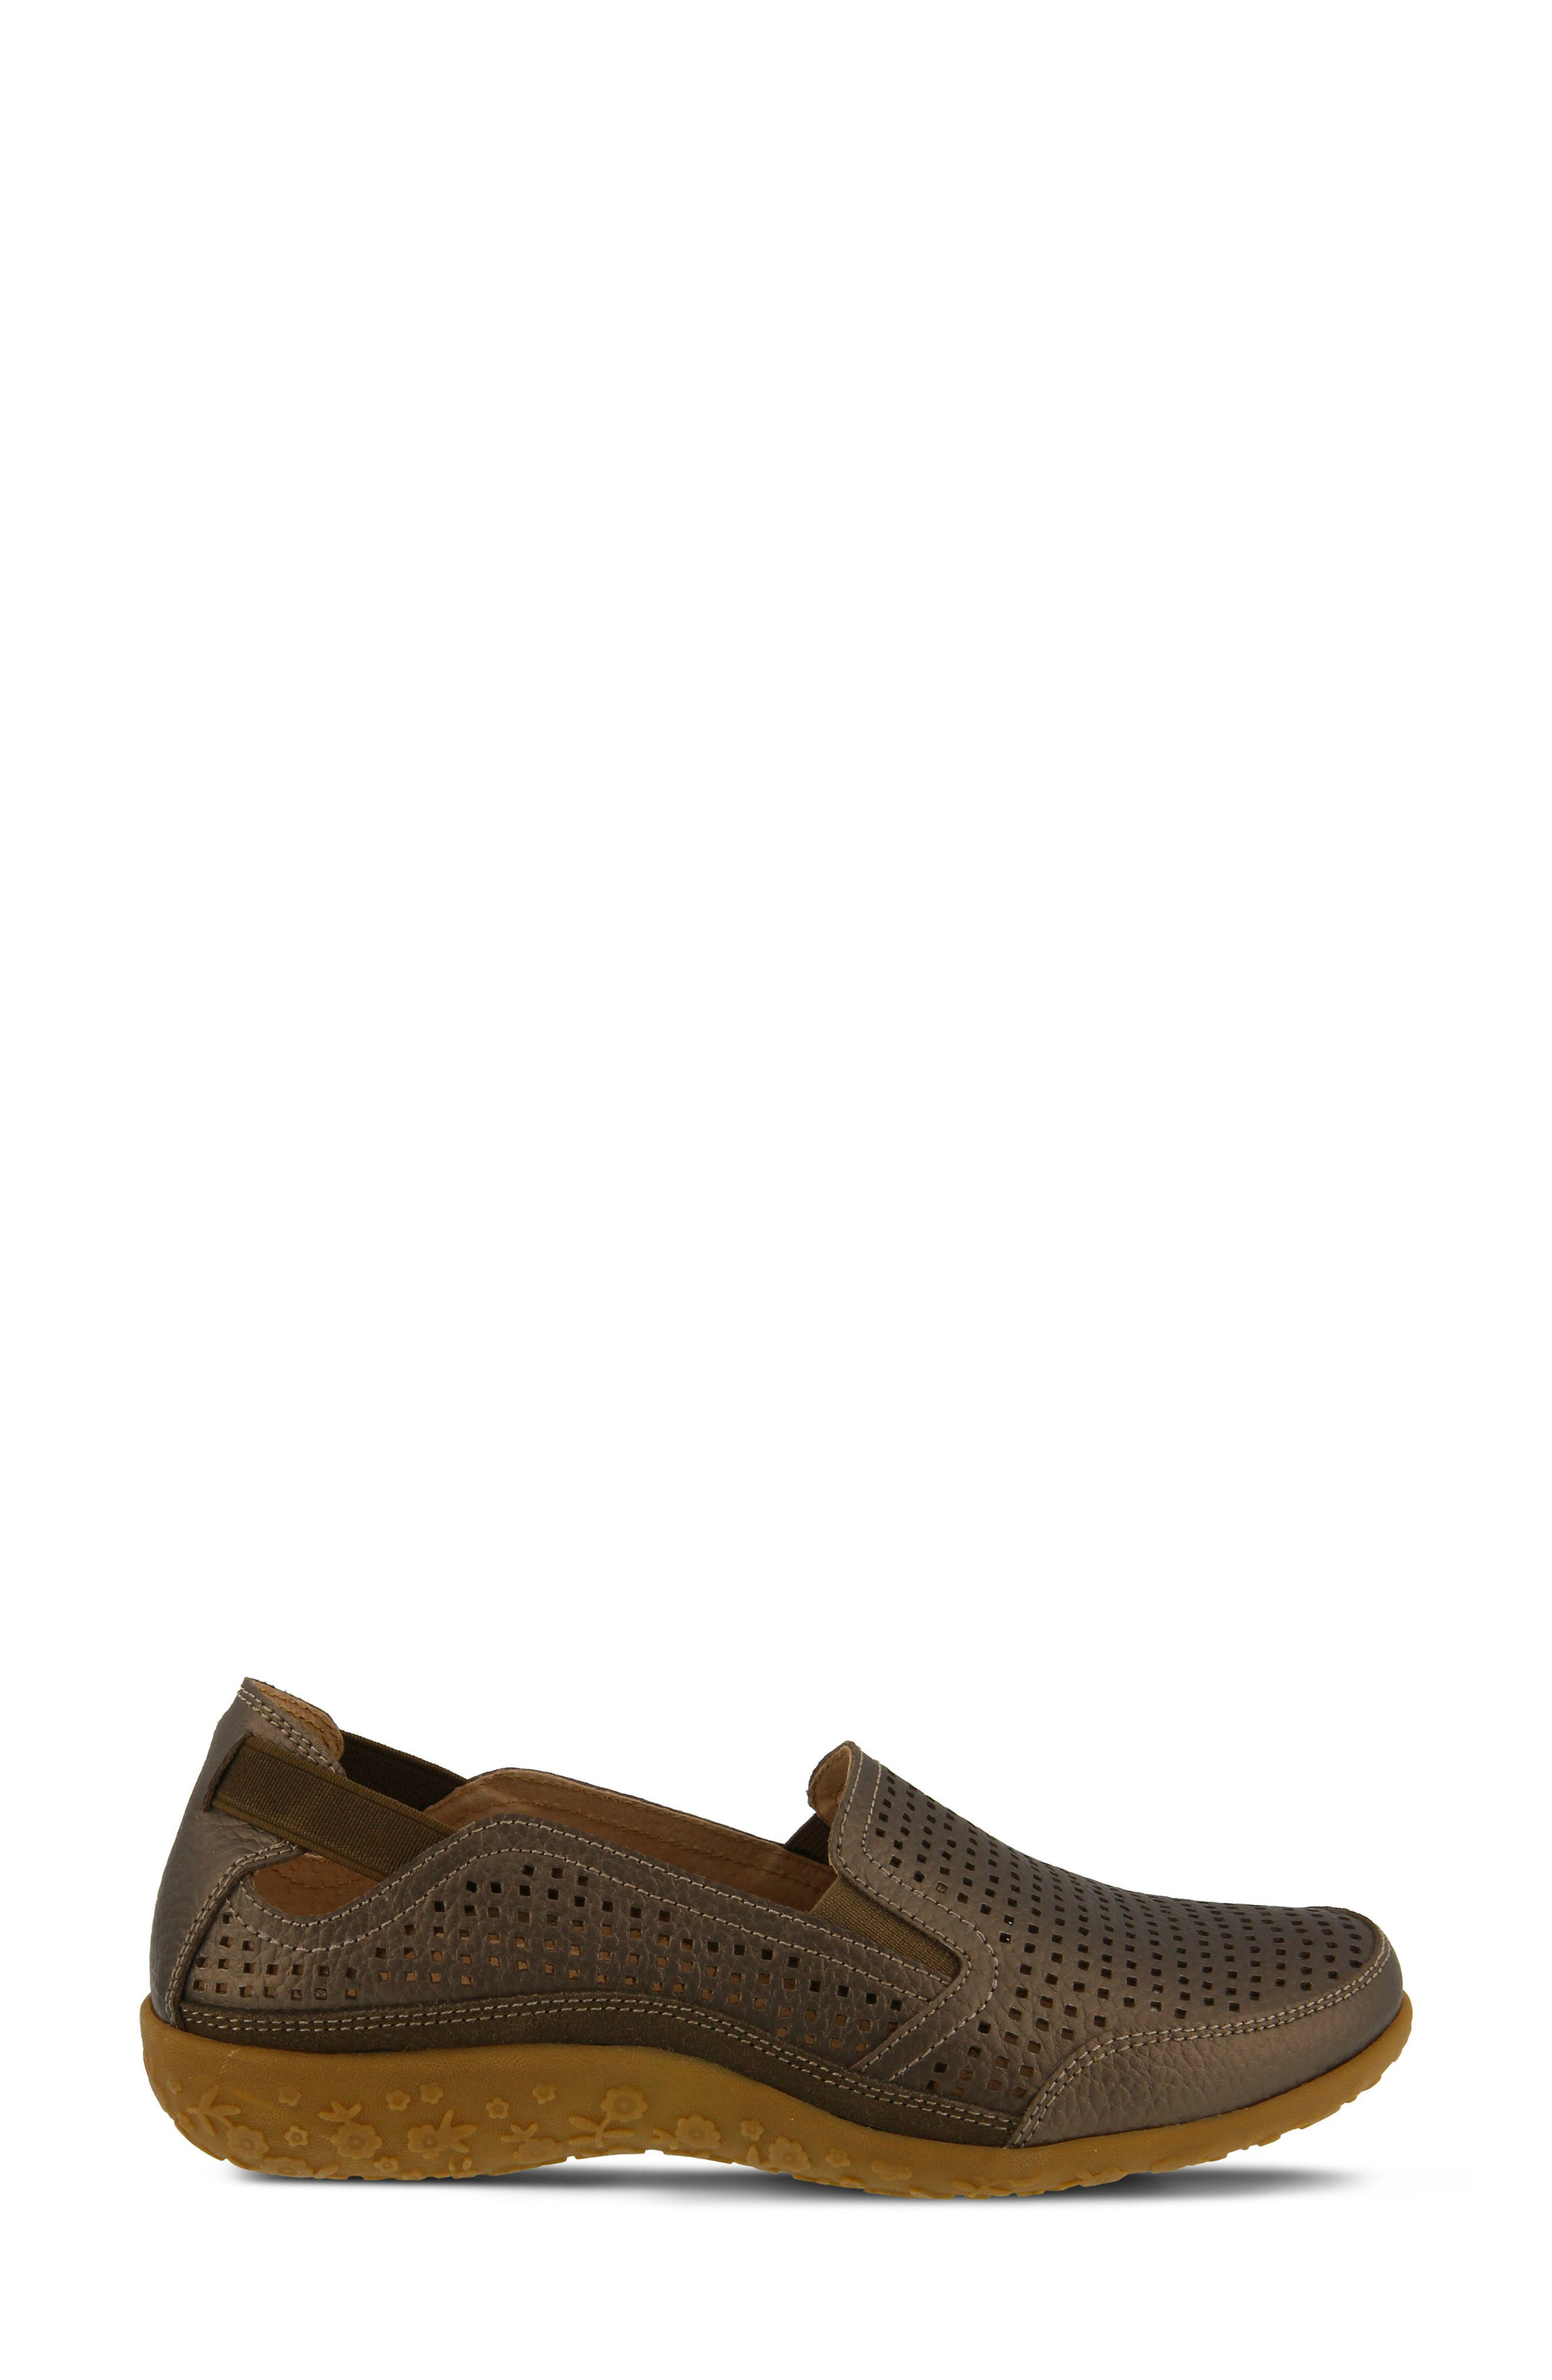 Juhi Loafer,                             Alternate thumbnail 3, color,                             Bronze Leather